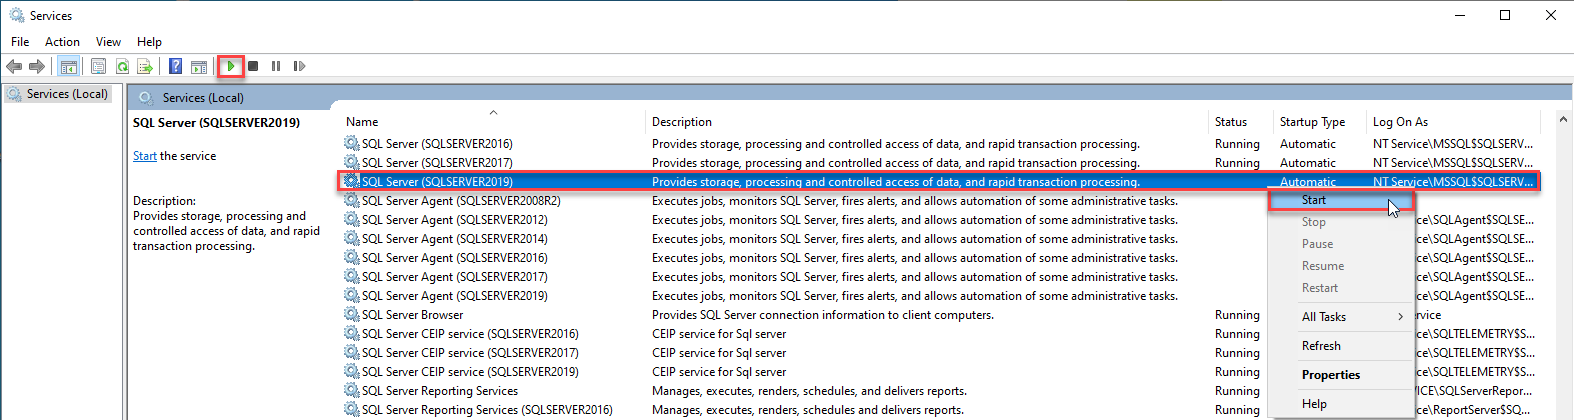 Start the SQL Server from the Services